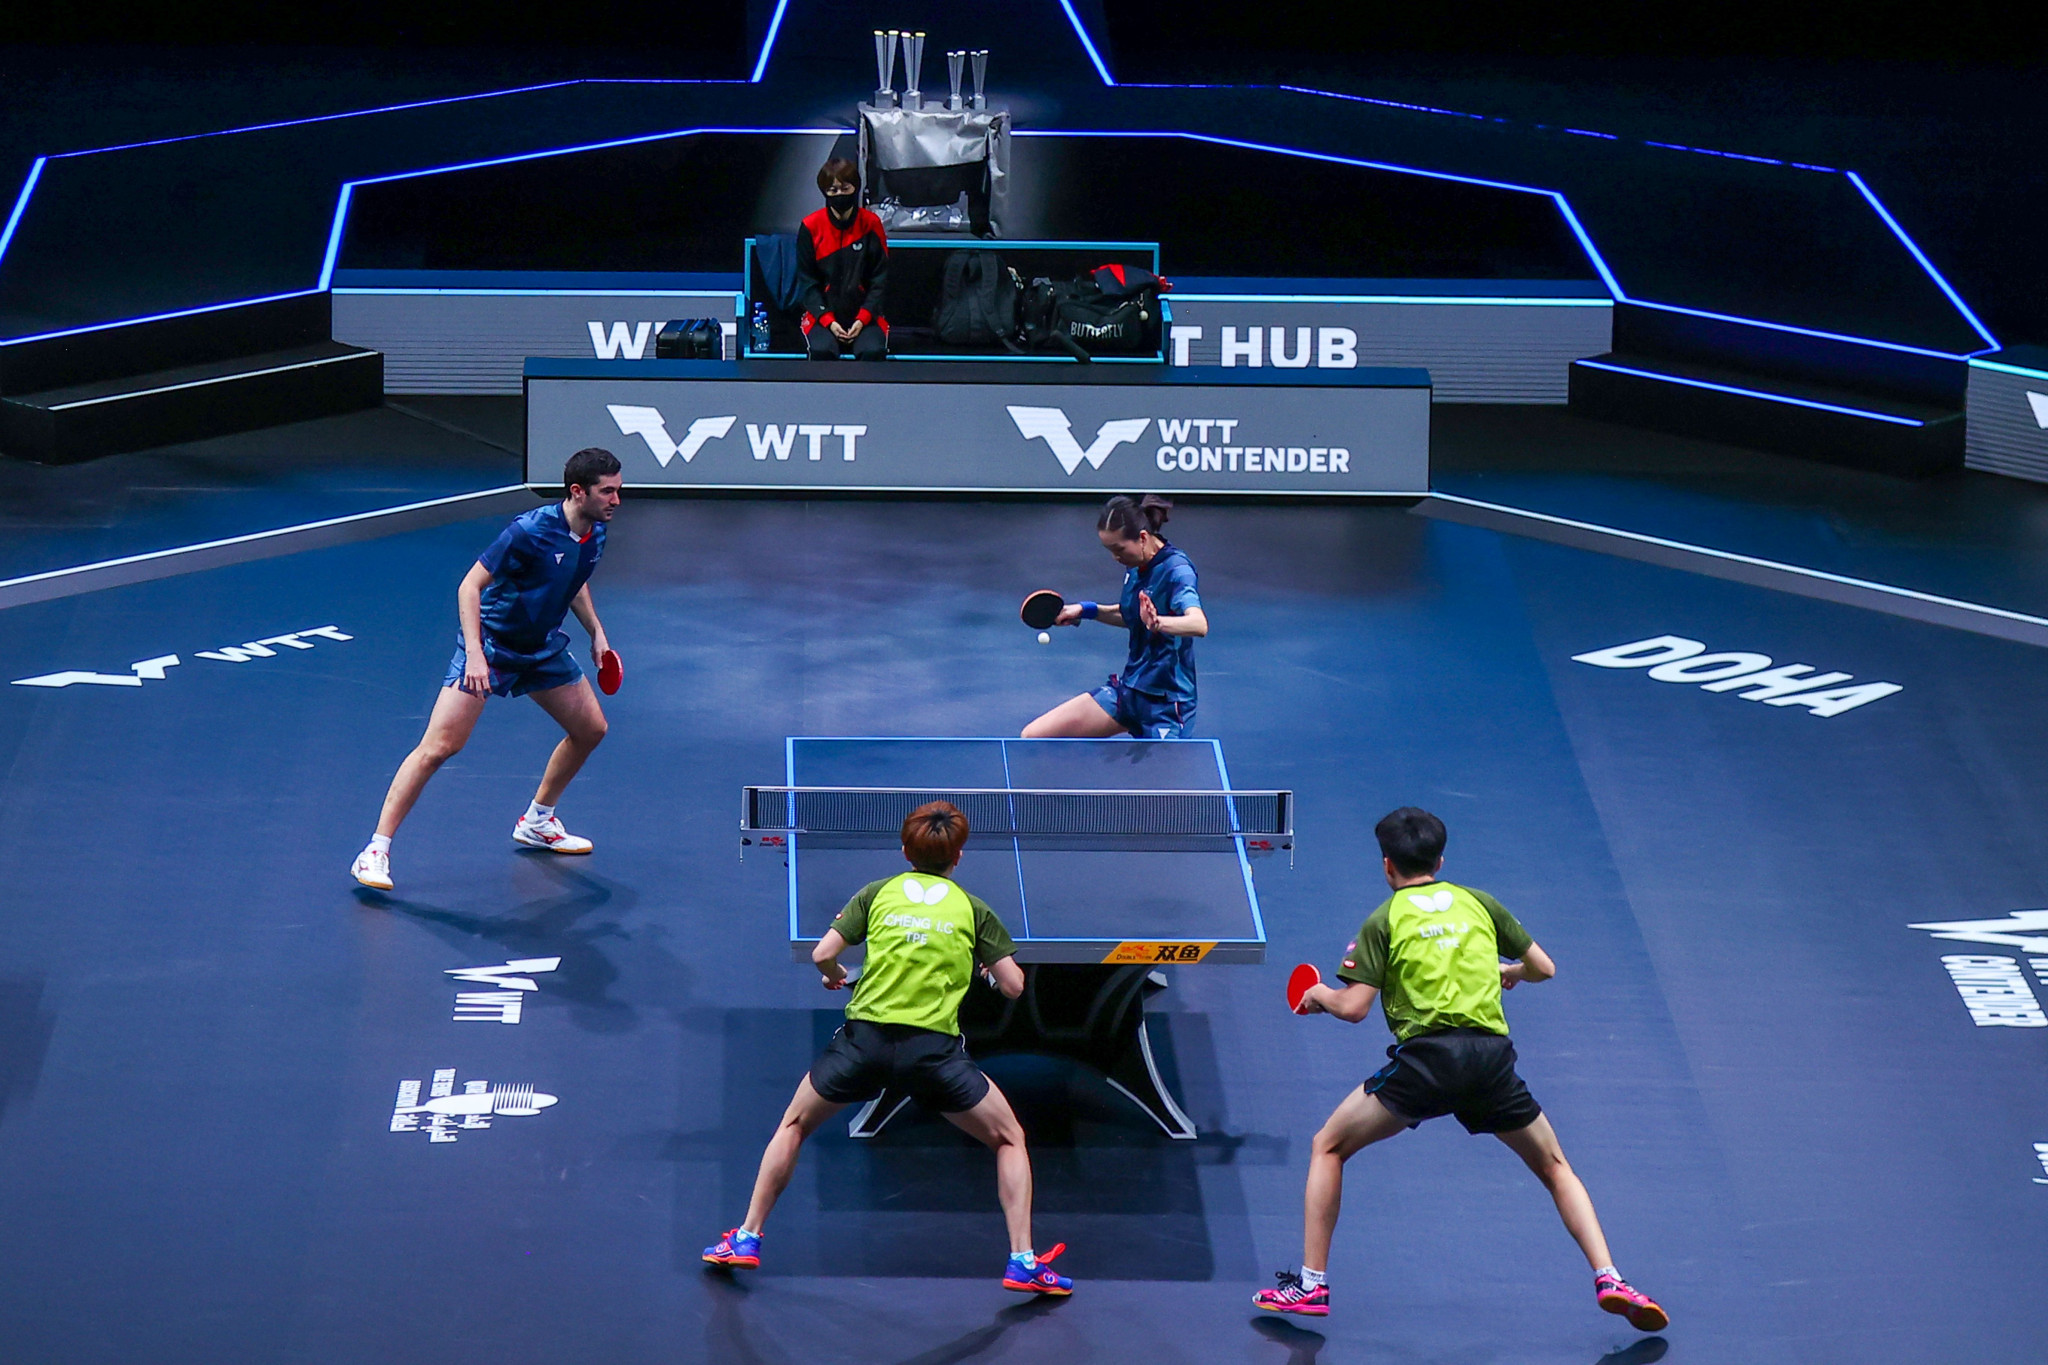 World Table Tennis plans to stage Chinese hub after Tokyo 2020 Olympics